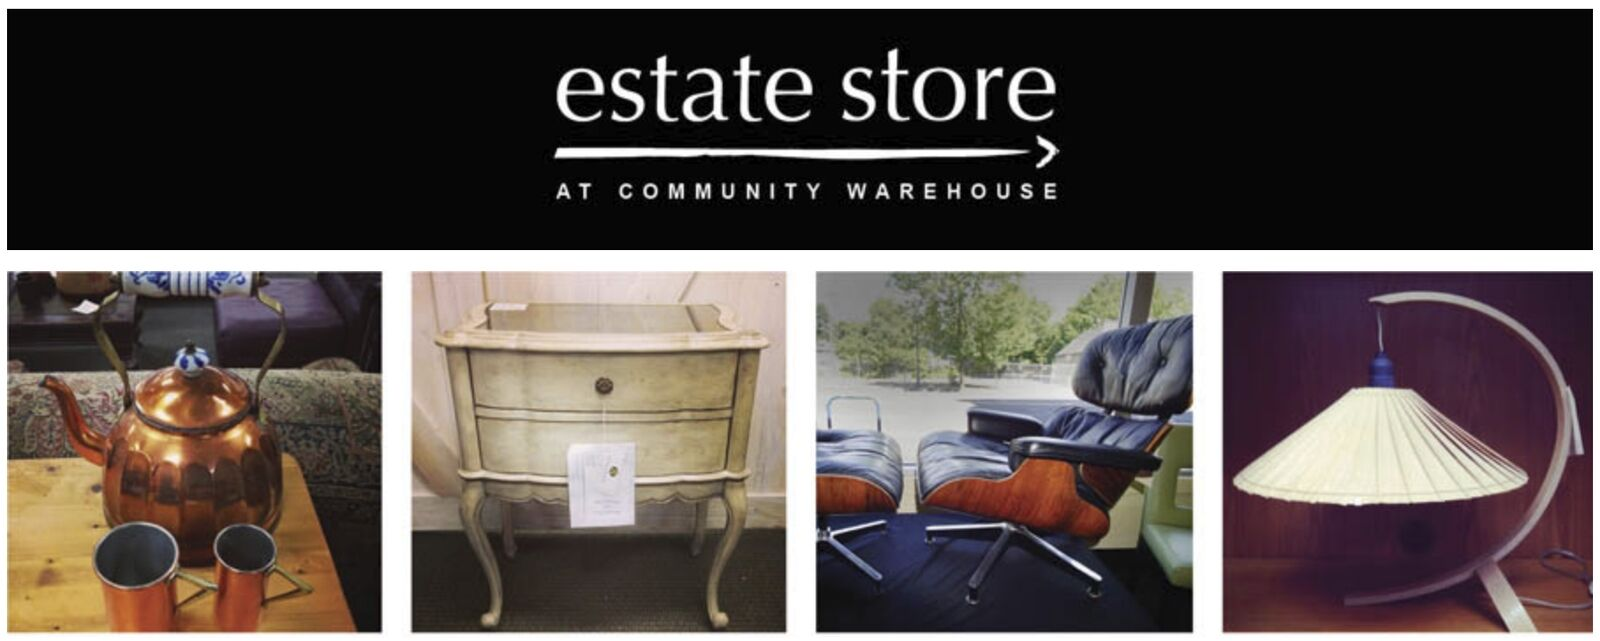 EstateStore-CommunityWarehouse